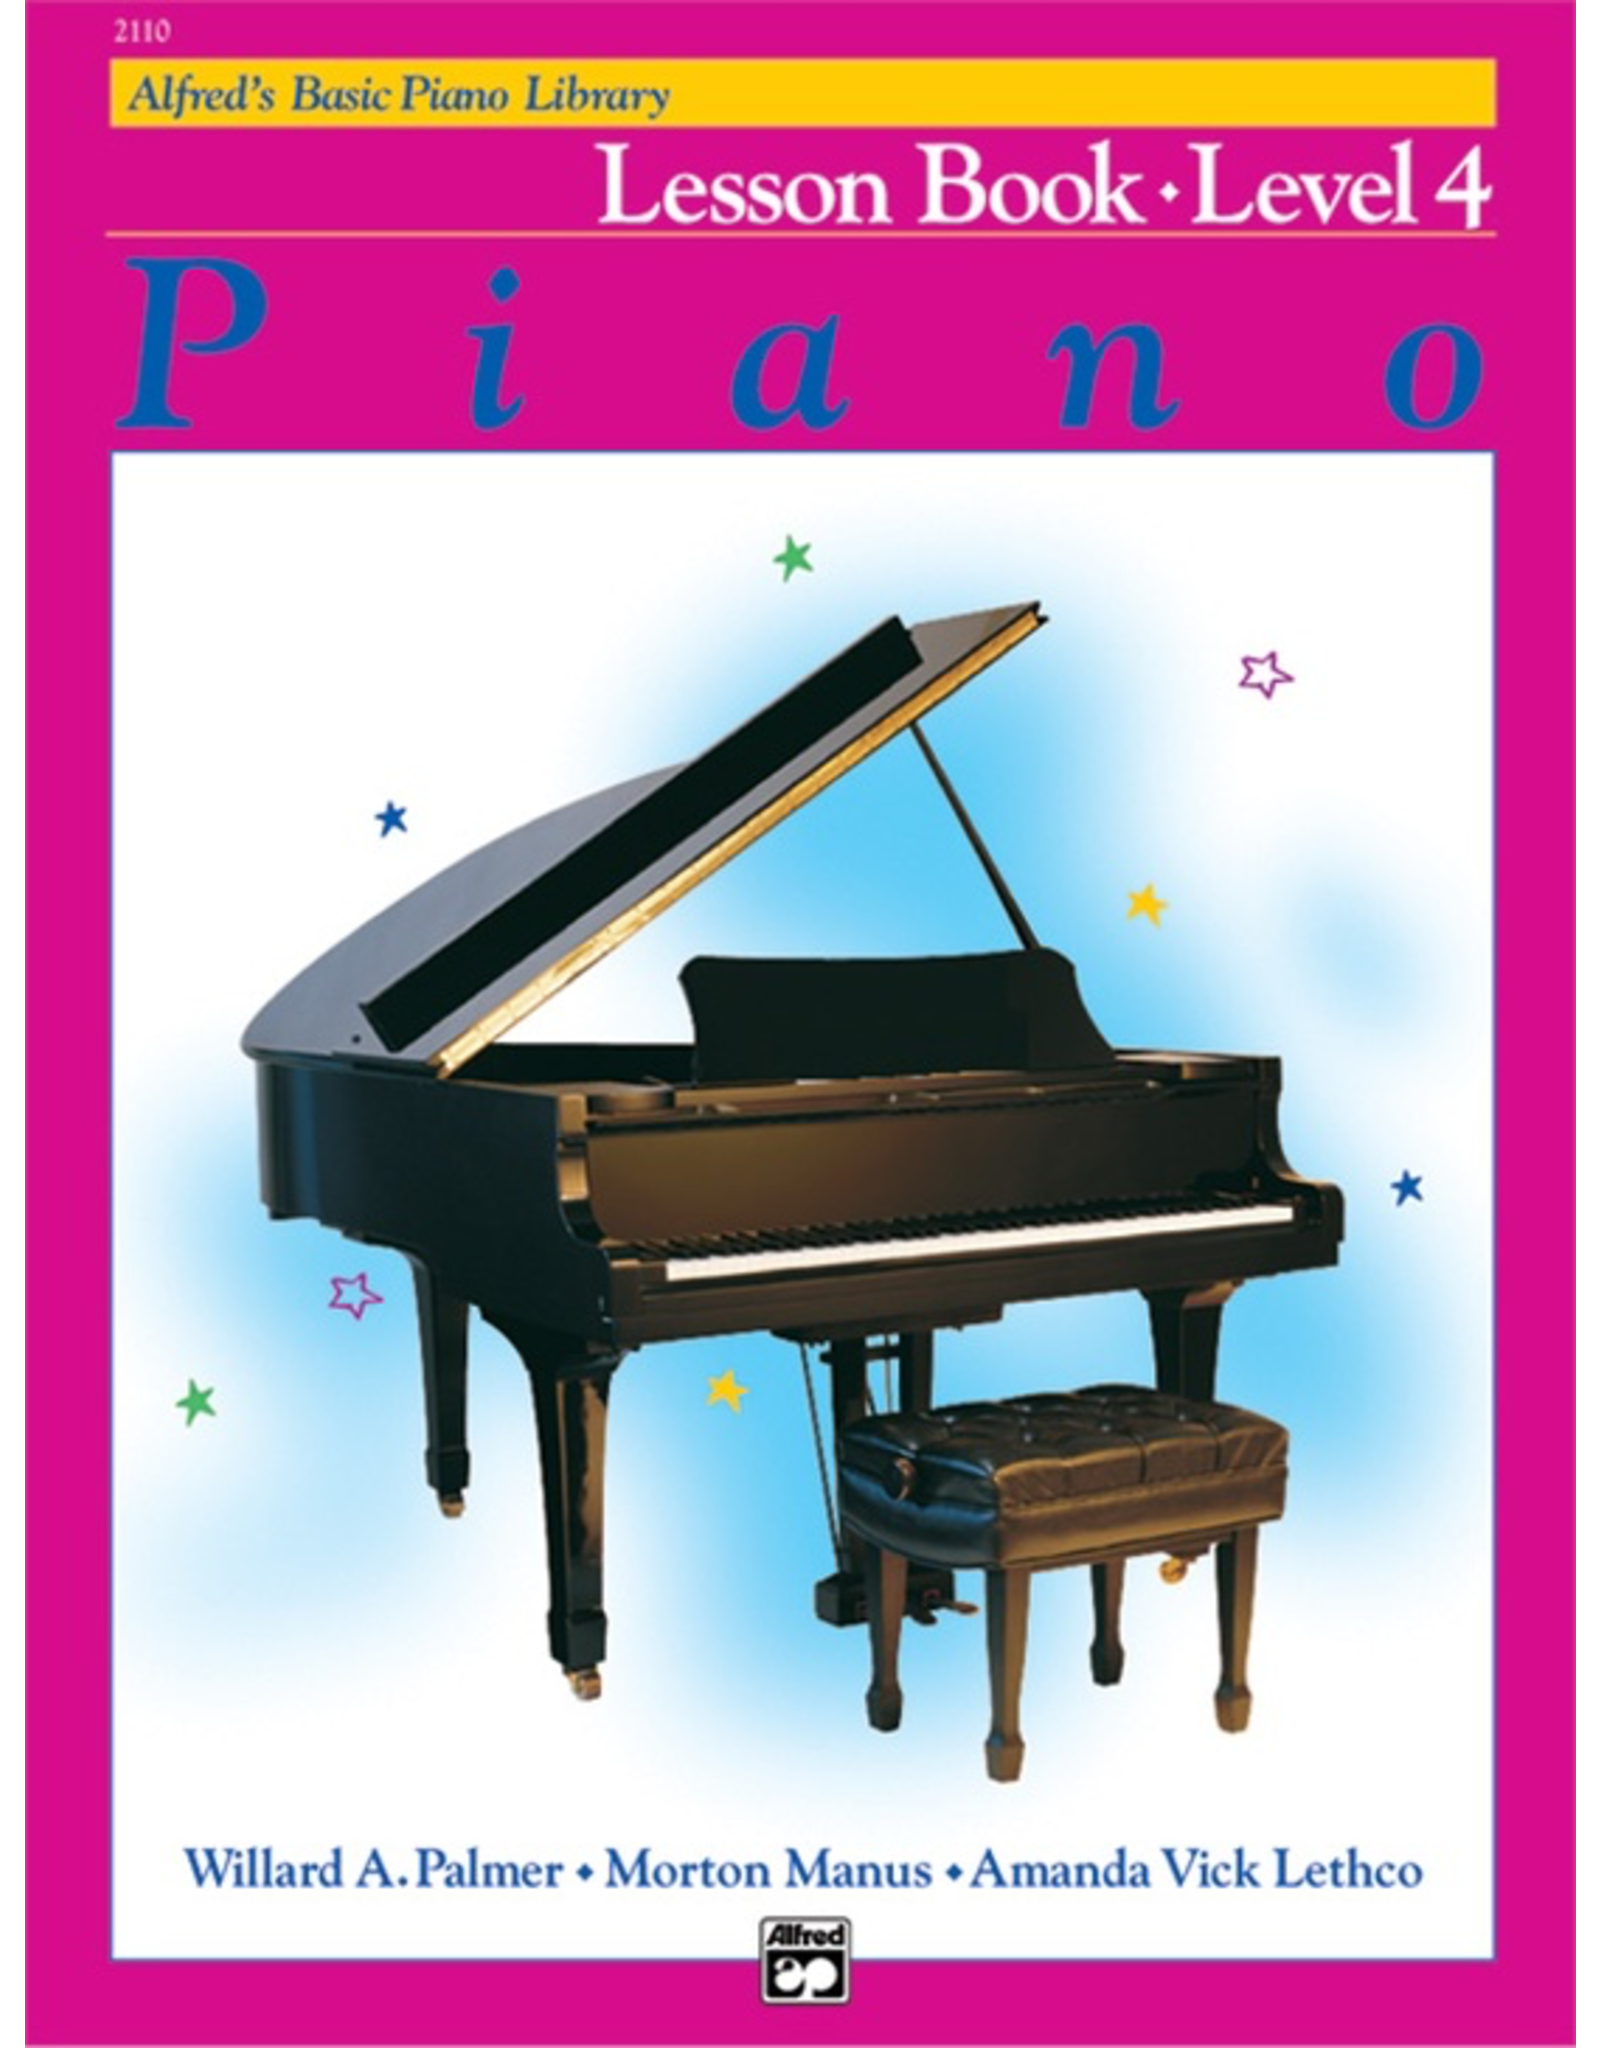 Alfred Alfred's Basic Piano Library, Lesson Book Level 4